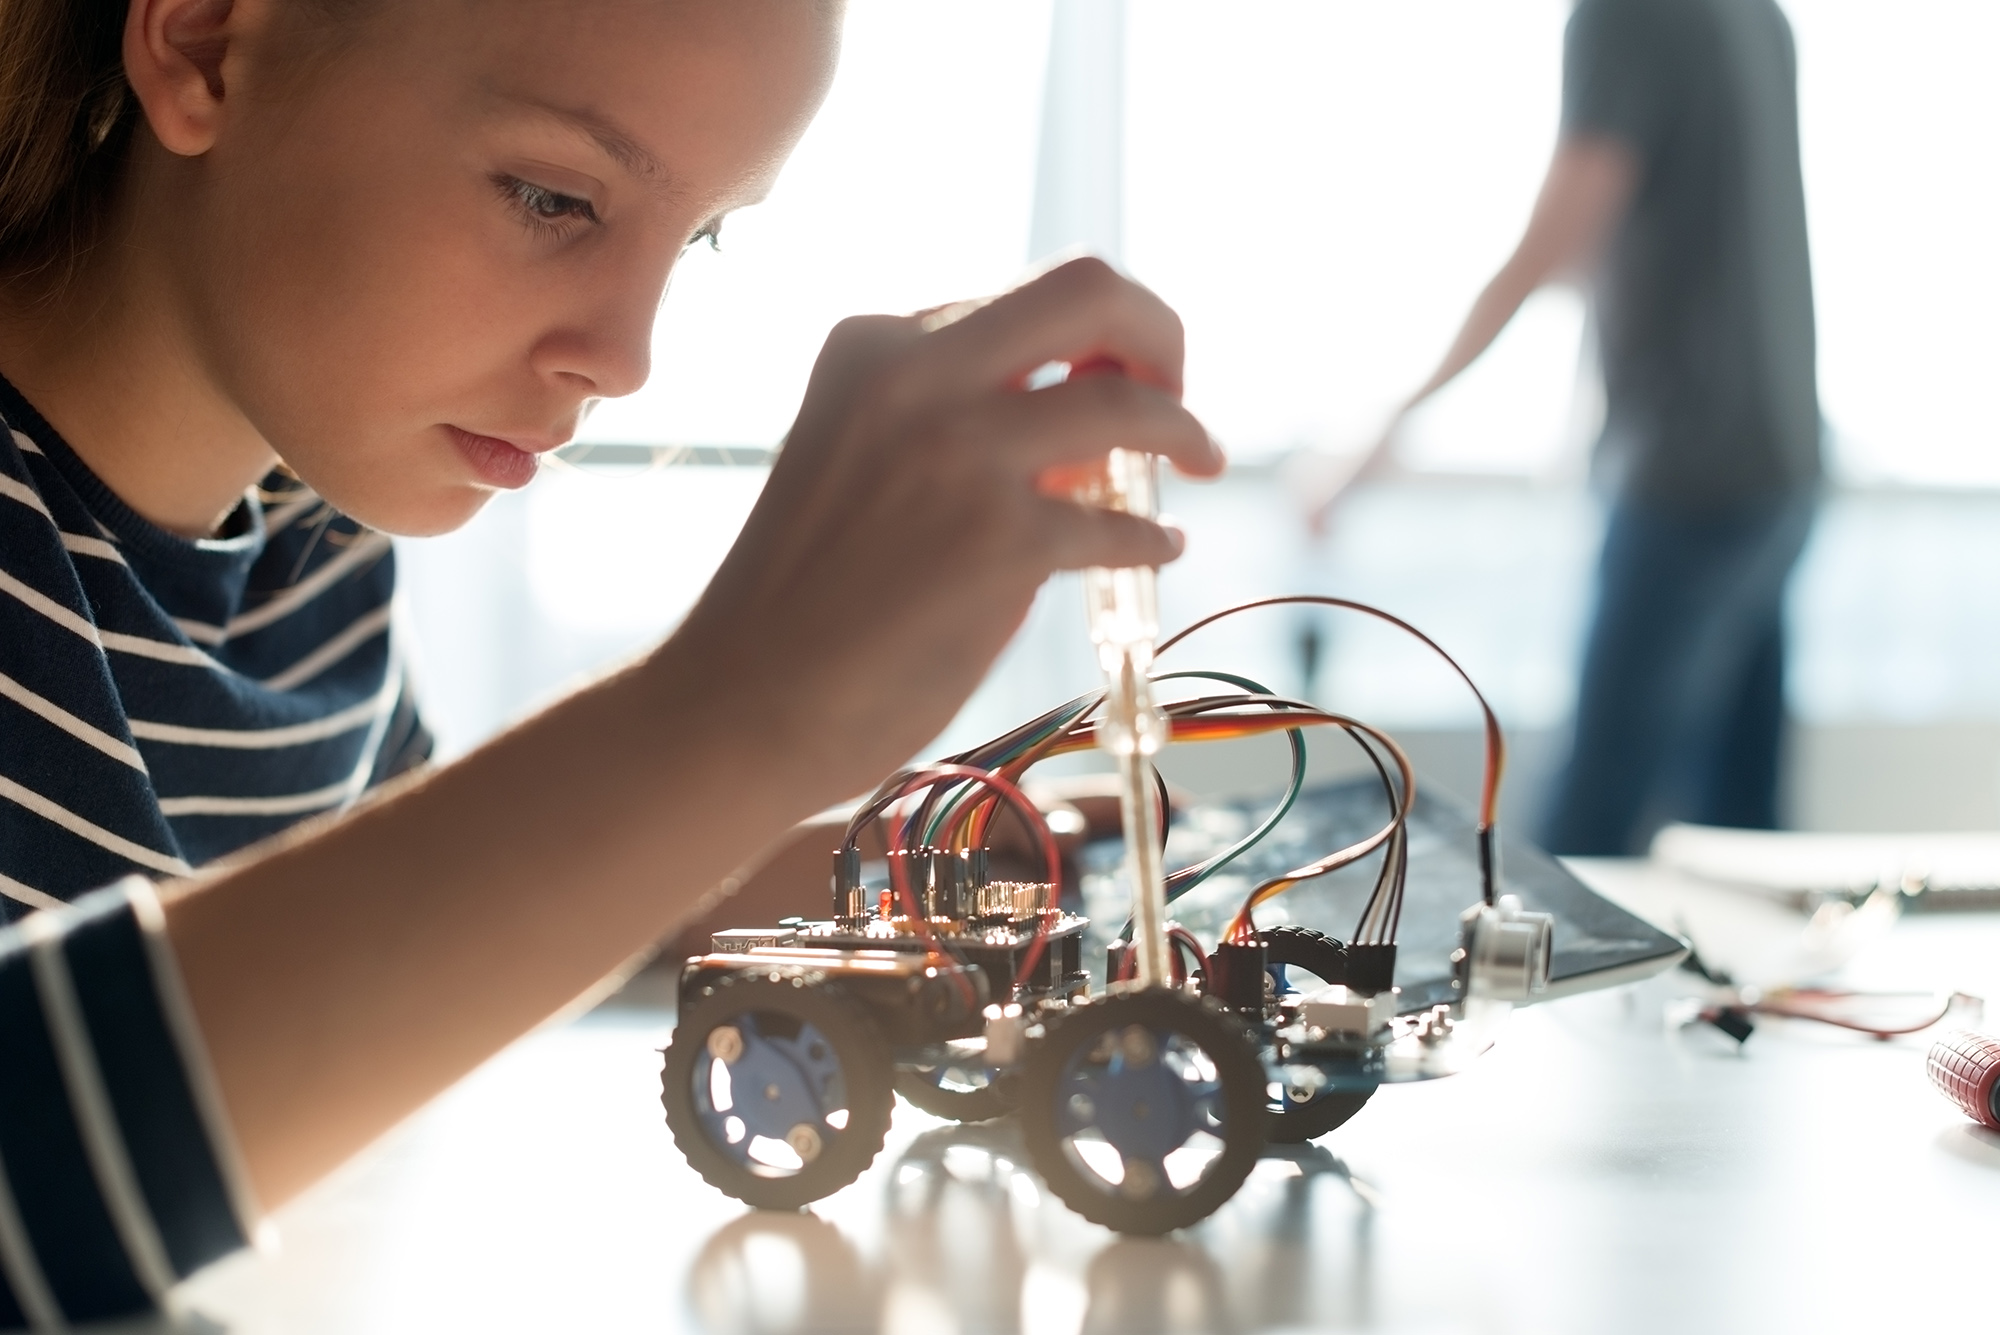 manufacturer of children's educational robots participates in an asset based loan